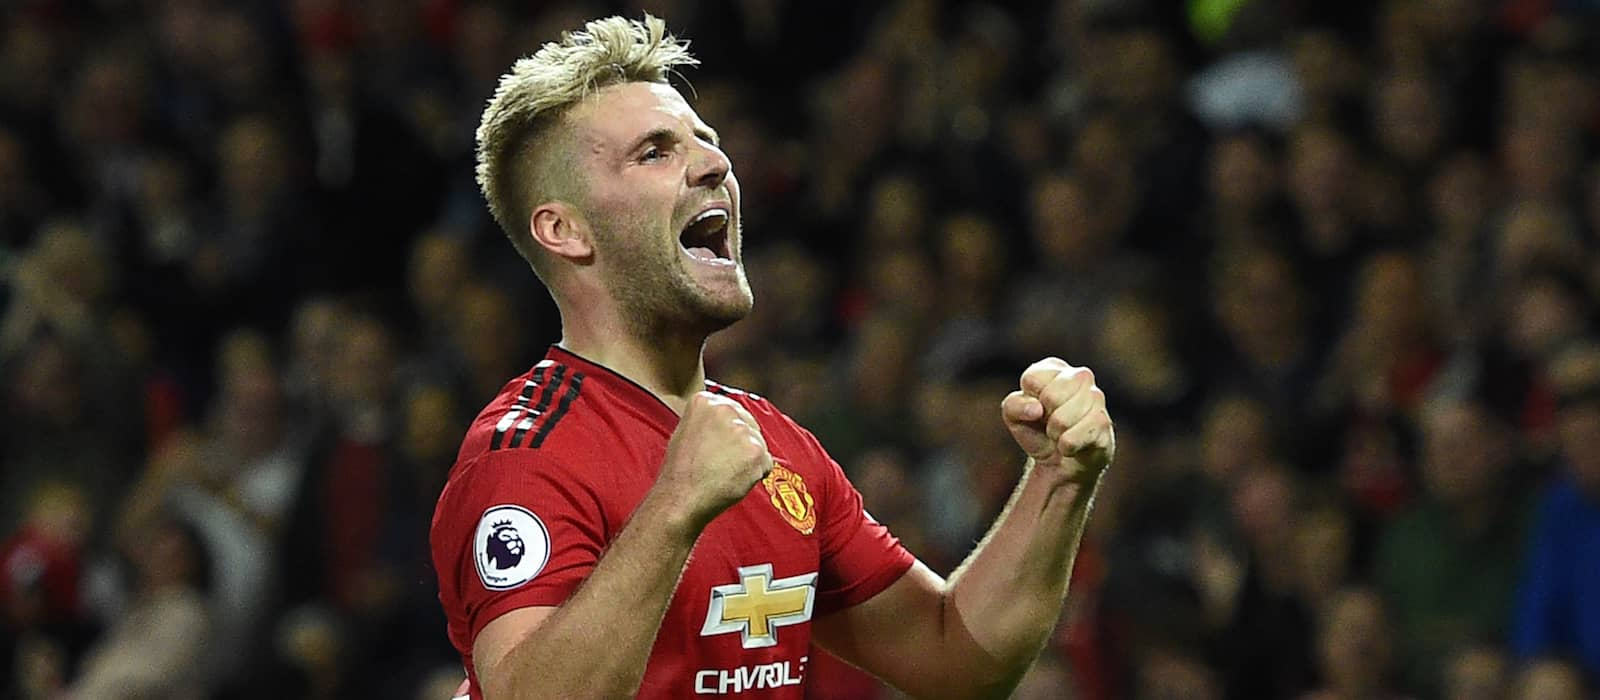 Luke Shaw likely to start for Manchester United against Leicester City